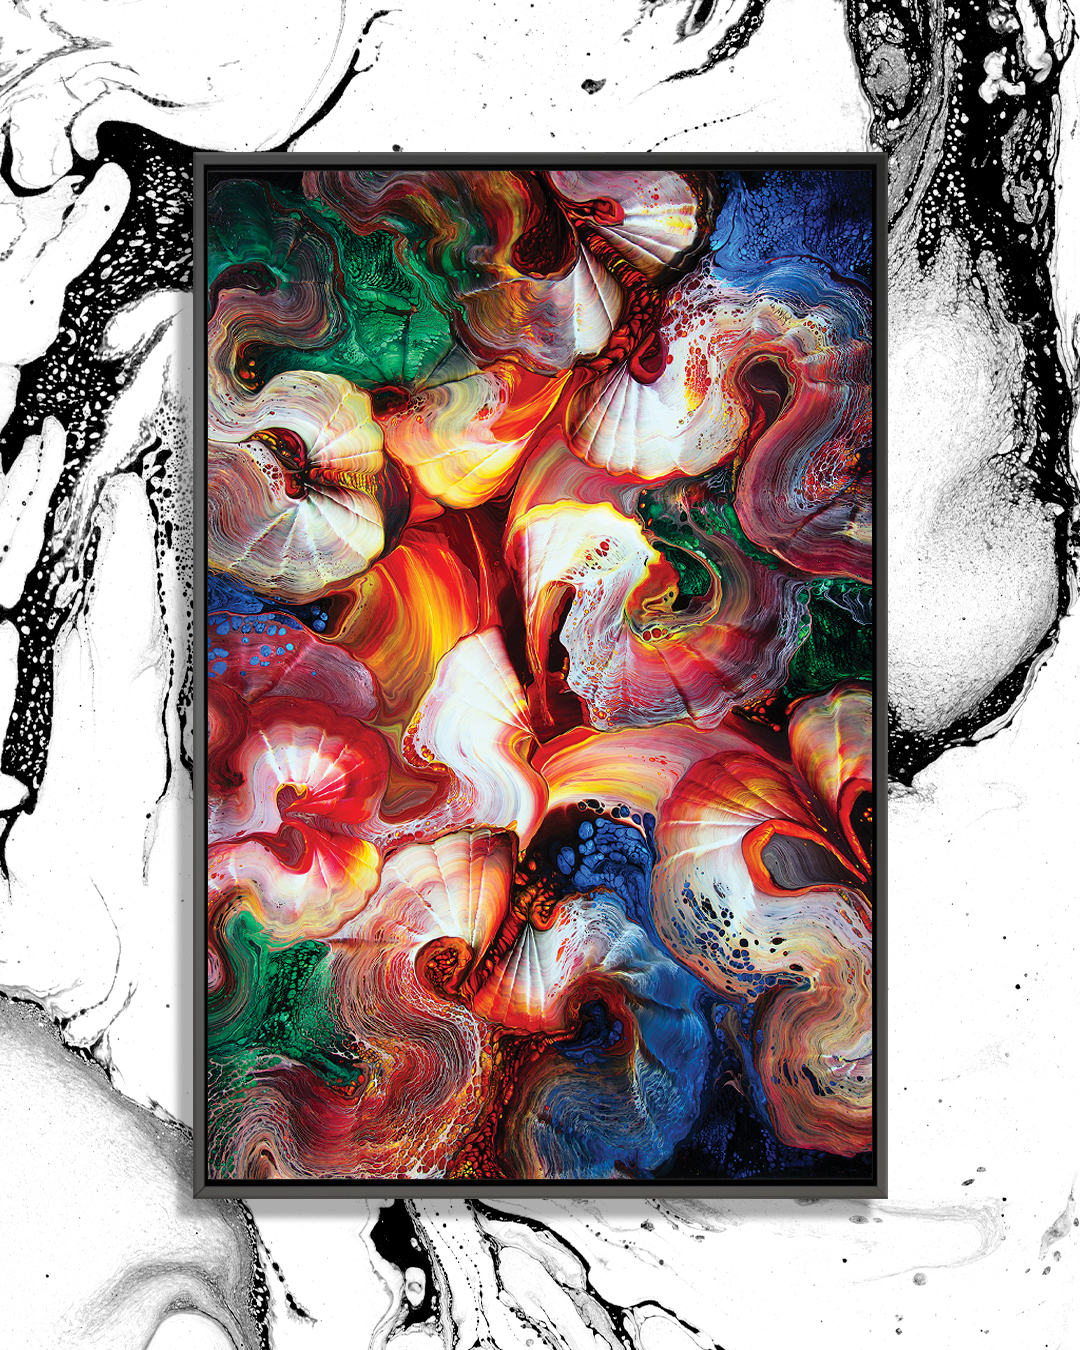 Colorful abstract image with shapes resembling geodes in red, yellow, green, blue, black and white